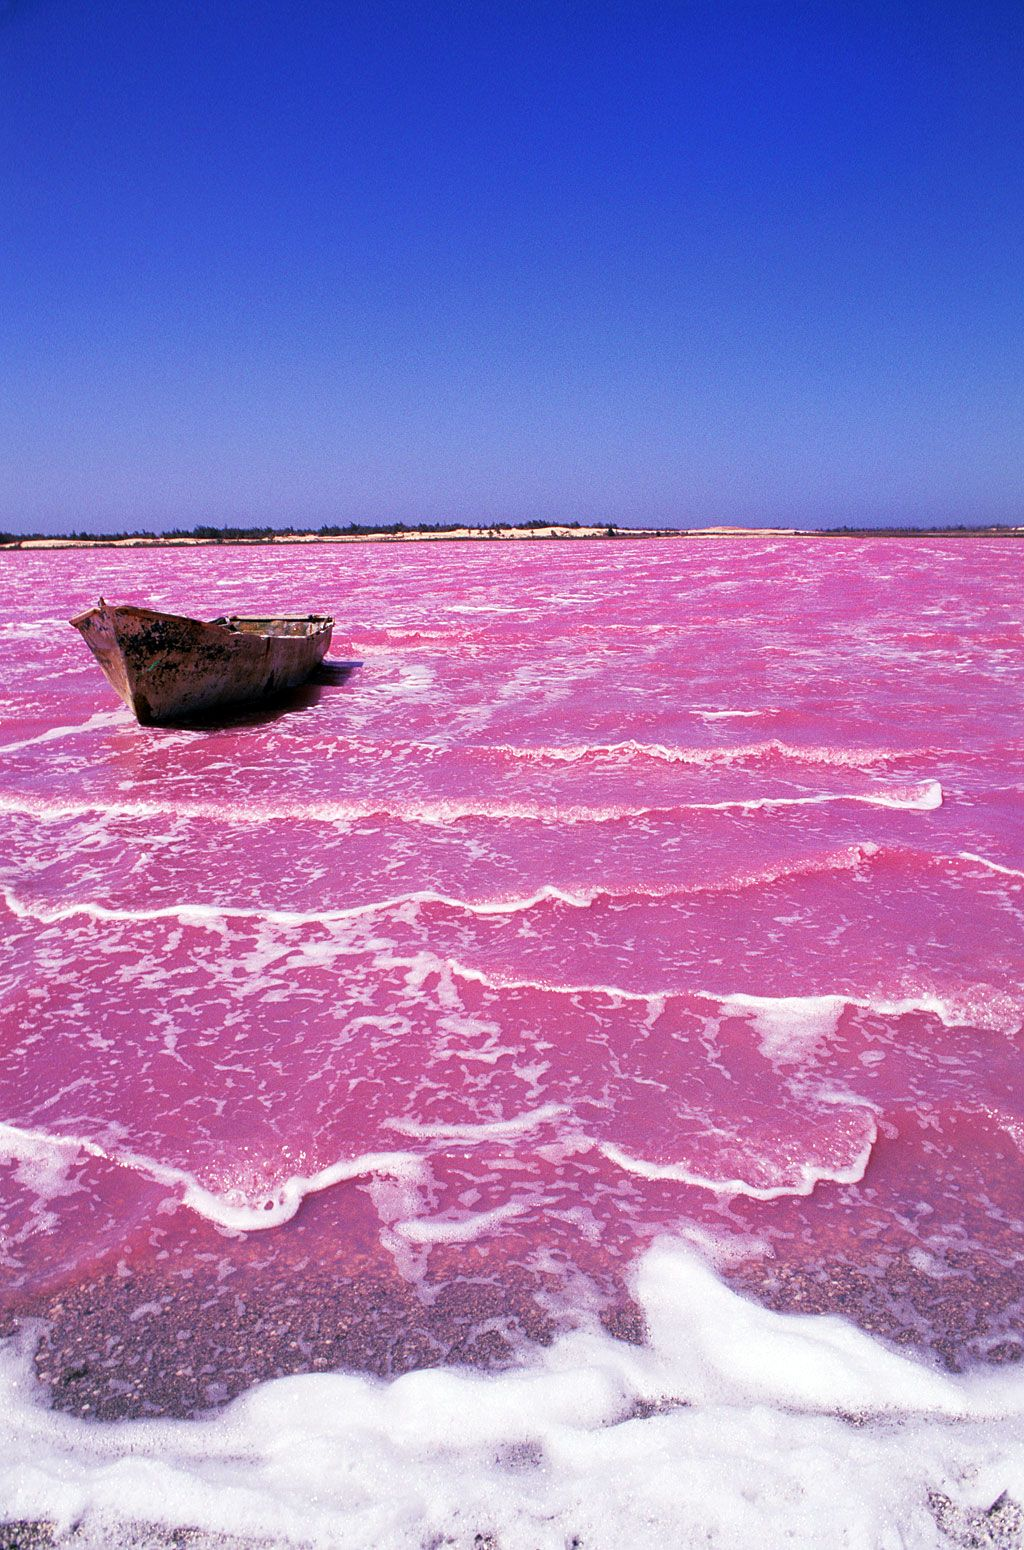 Natural Wonders: Photos of Surprisingly Colorful Lakes, Mountains, and More